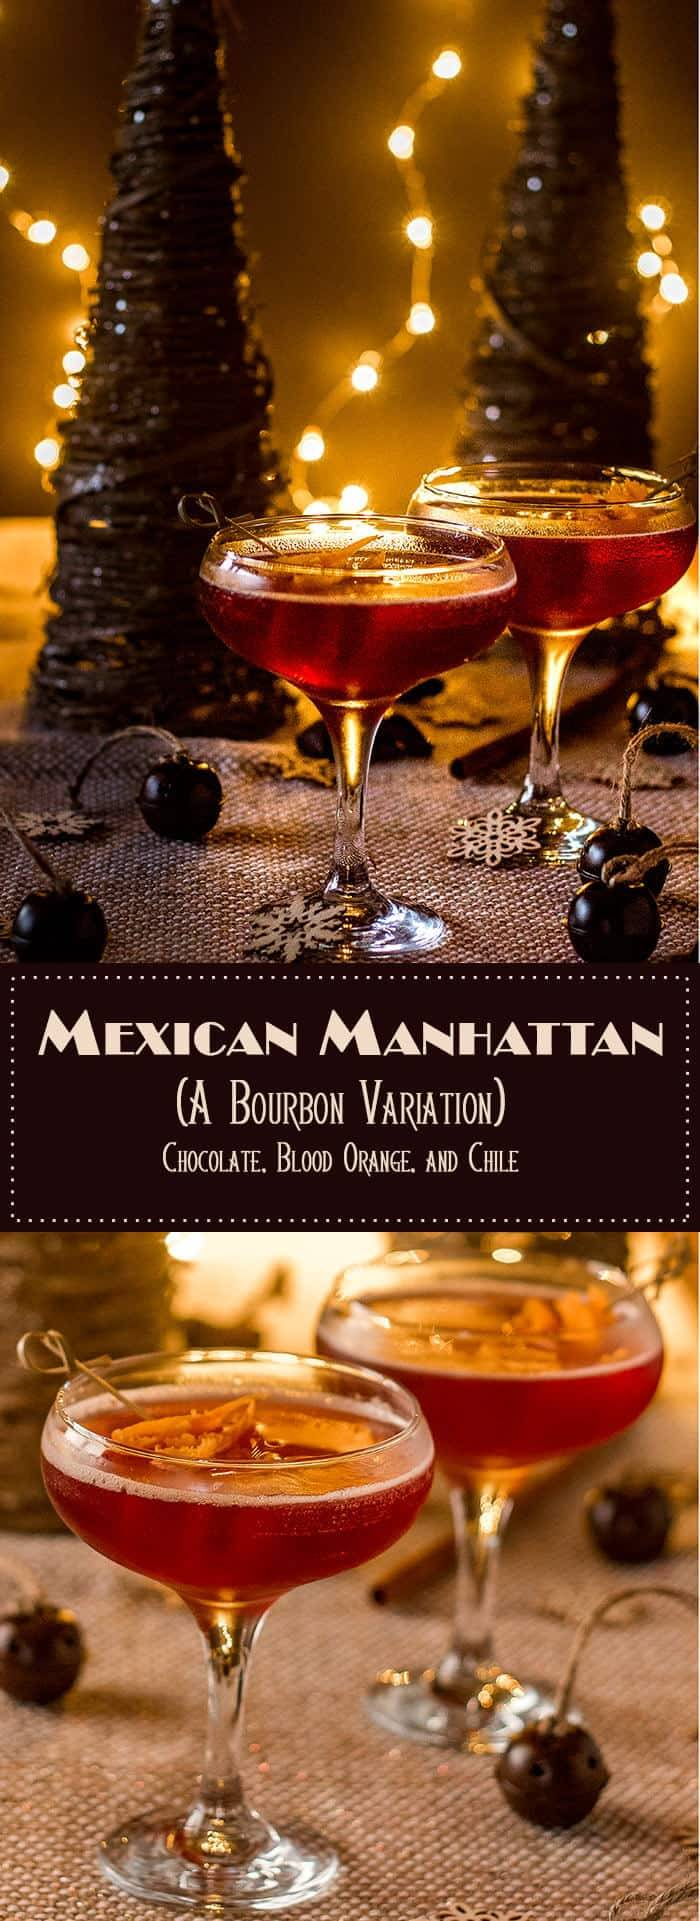 Mexican Manhattan - Blood orange liqueur, chocolate chile liqueur, and brandy get shaken and topped with mole bitters... A festive and zesty variation on the classic manhattan! #manhattanvariation #festivecocktail #Christmascocktail #cocktails #bourboncocktails